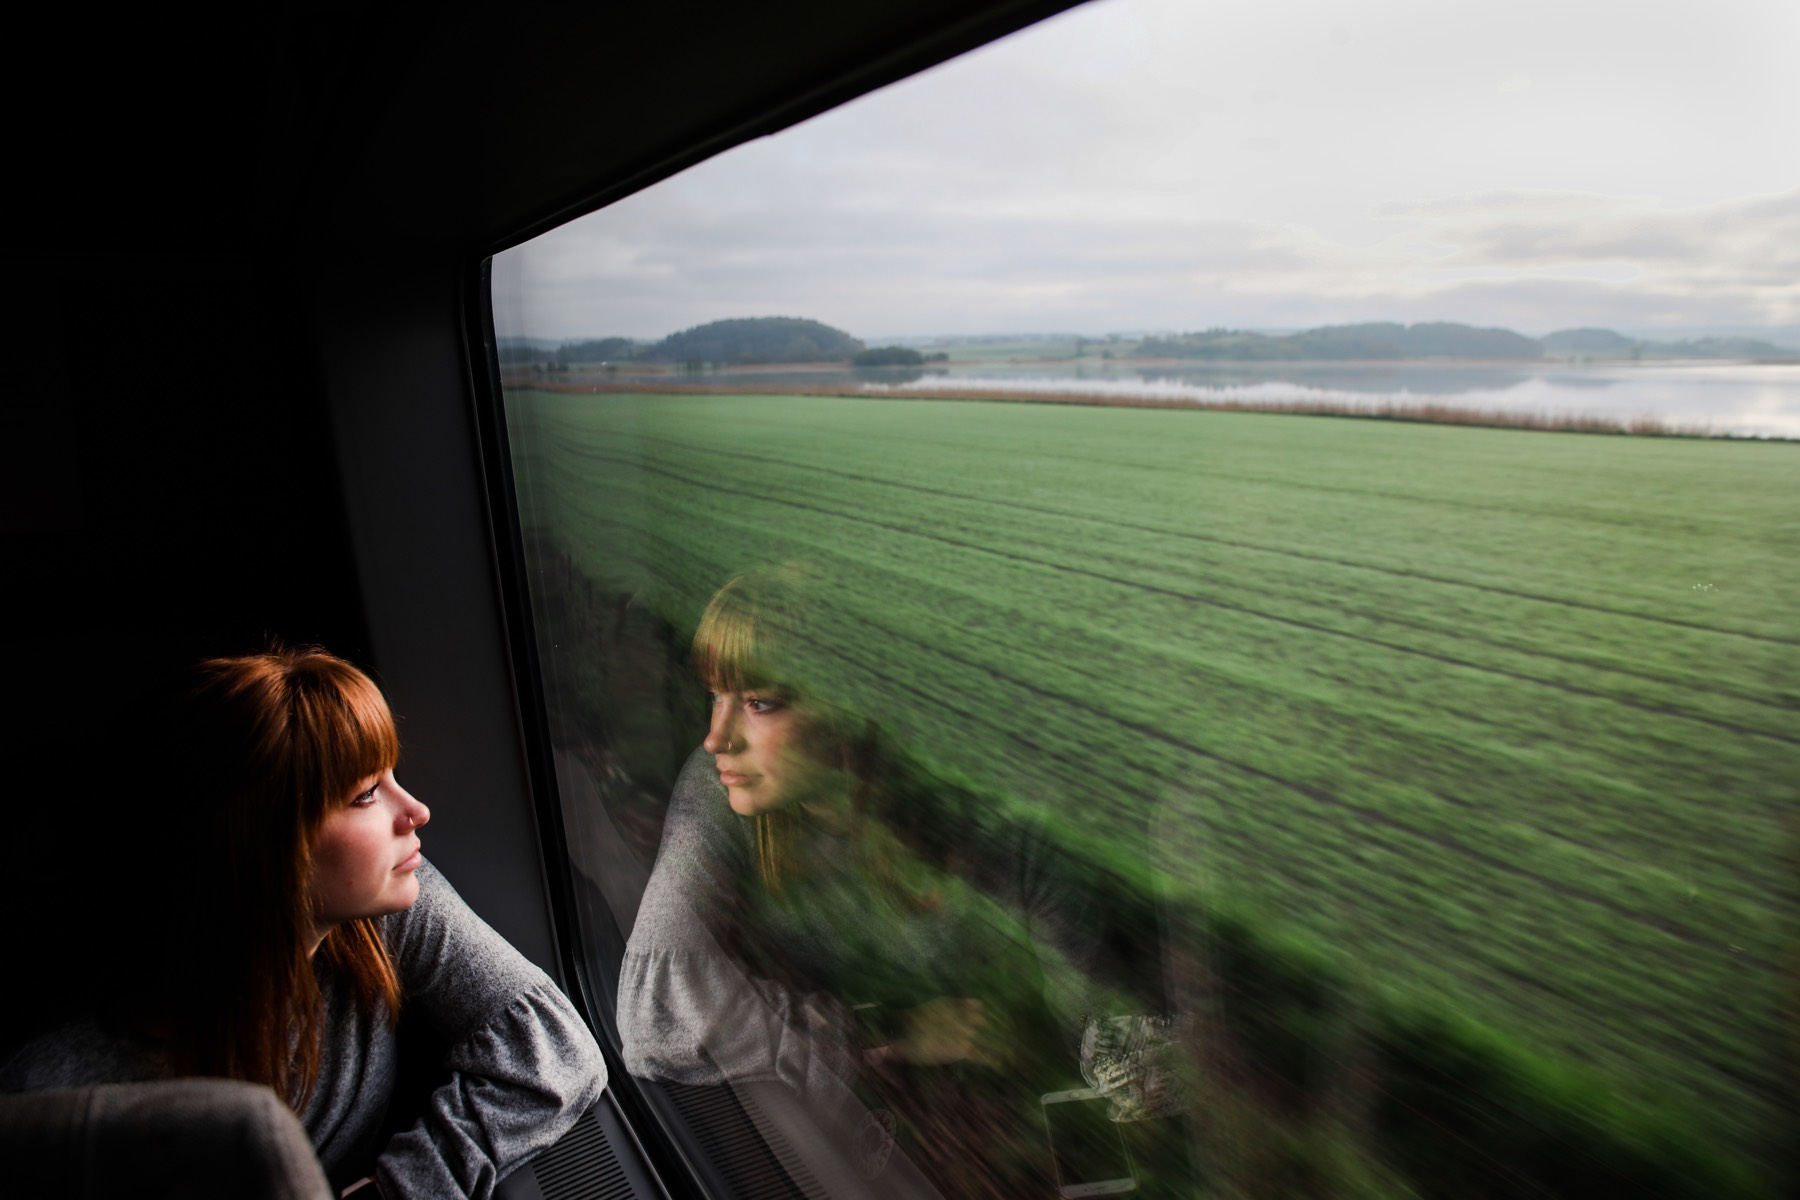 A student looks out a train window